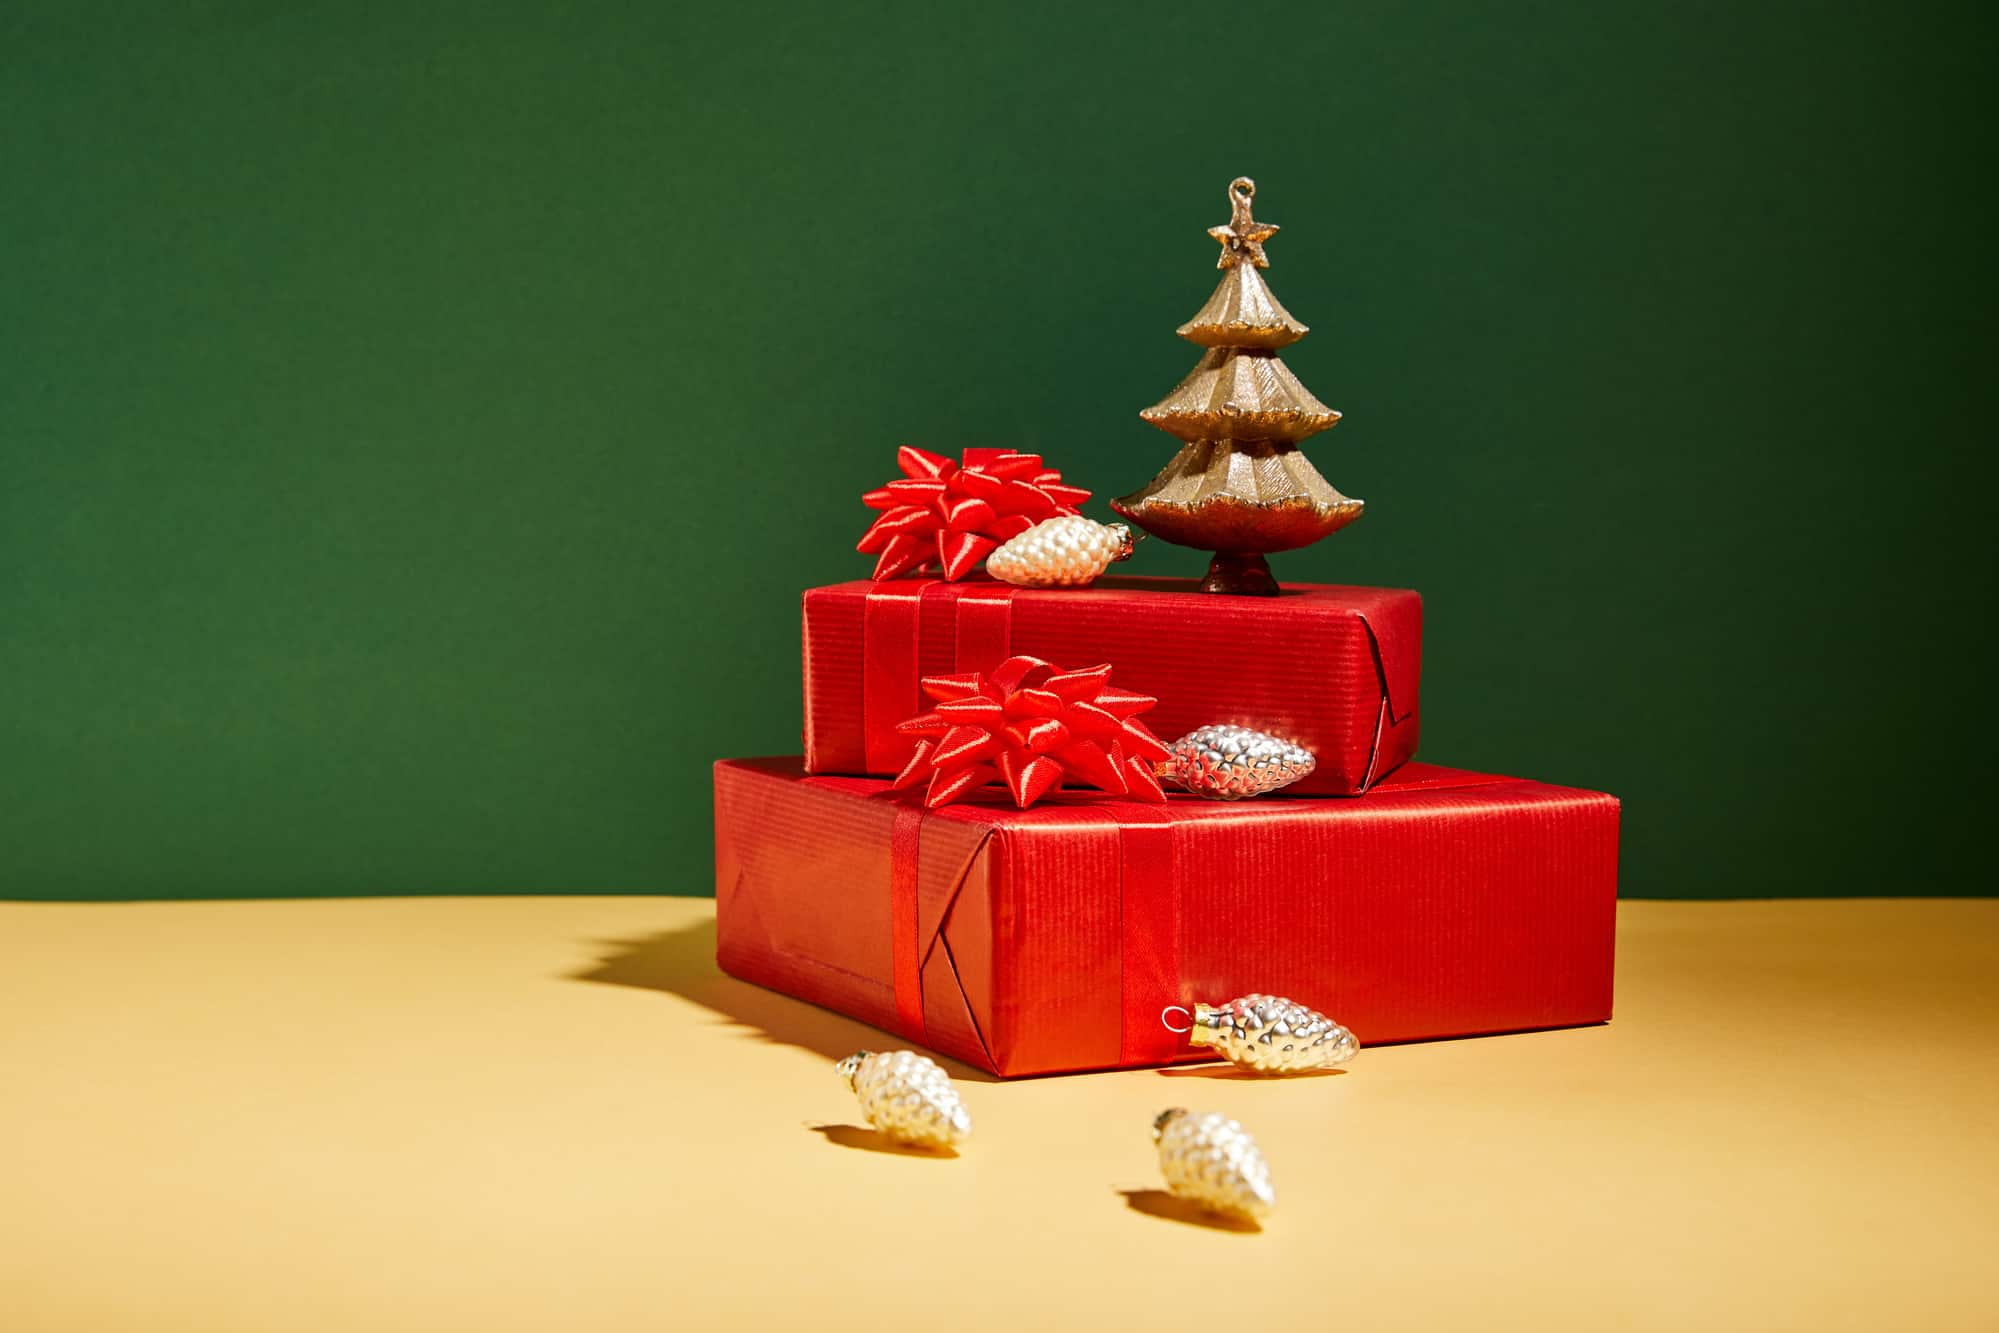 The formula for a winning retail Christmas ad